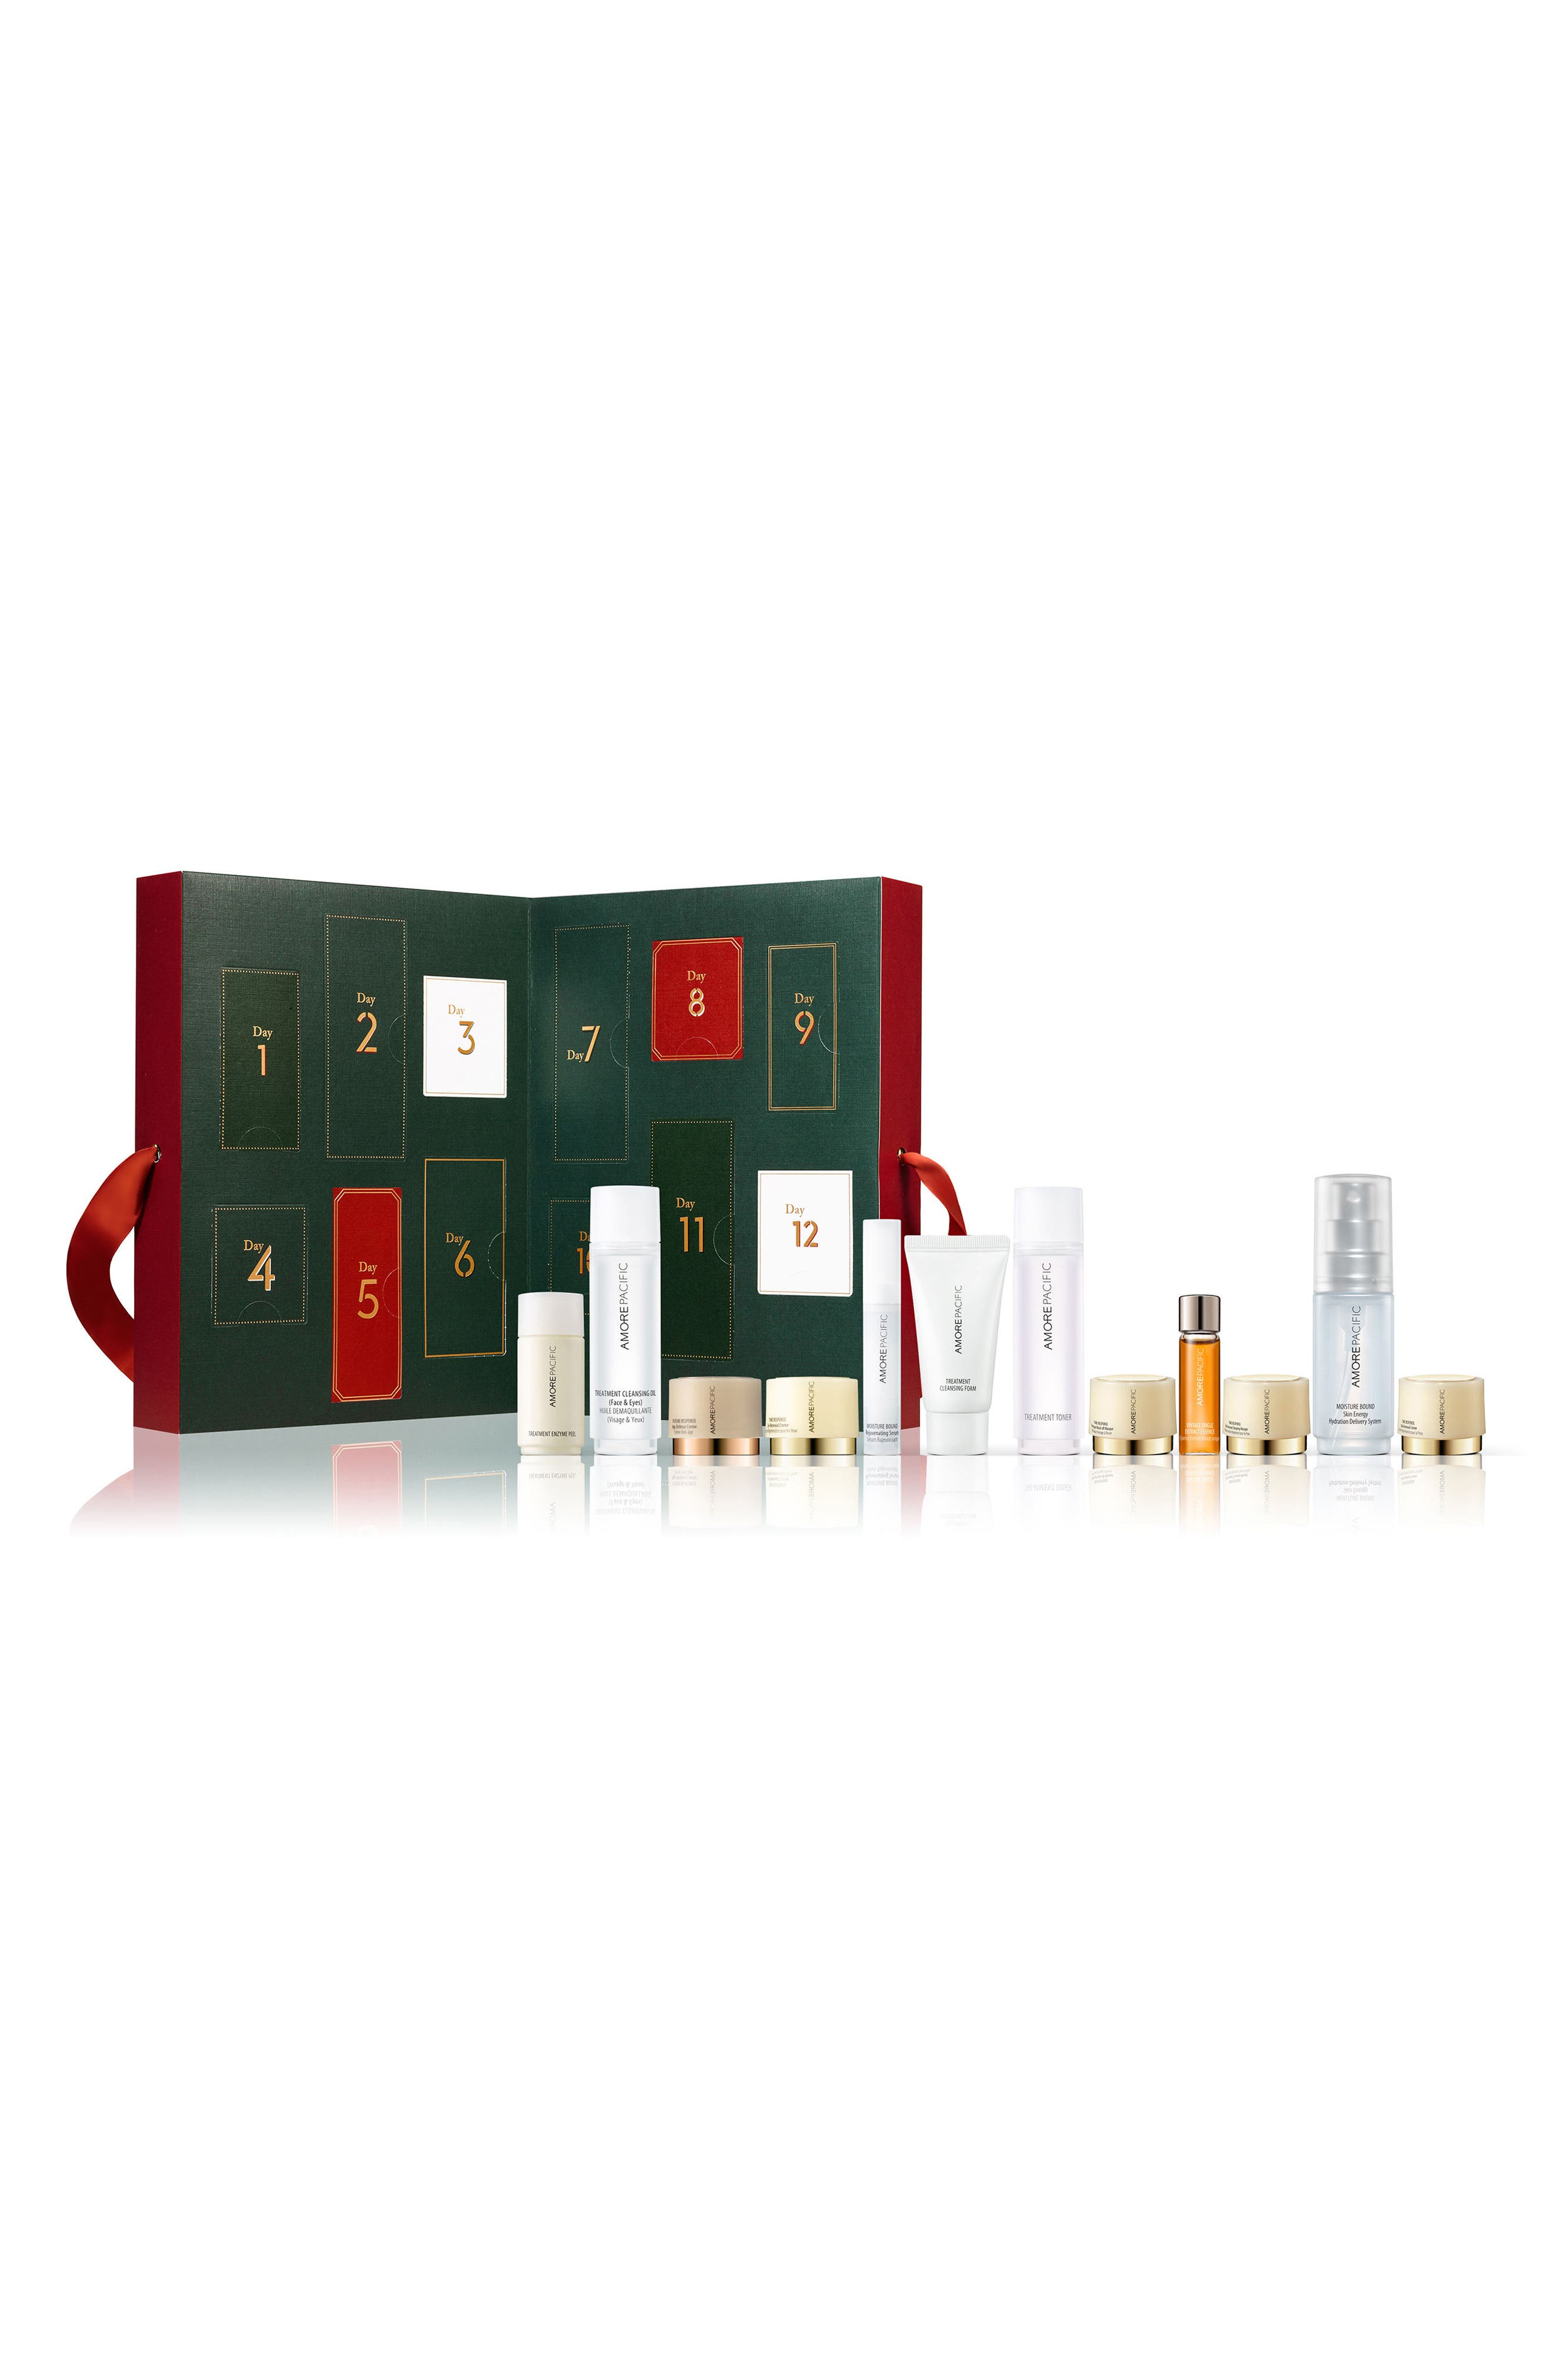 AMOREPACIFIC My 12 Days of Timeless Beauty Collection ($162 Value)